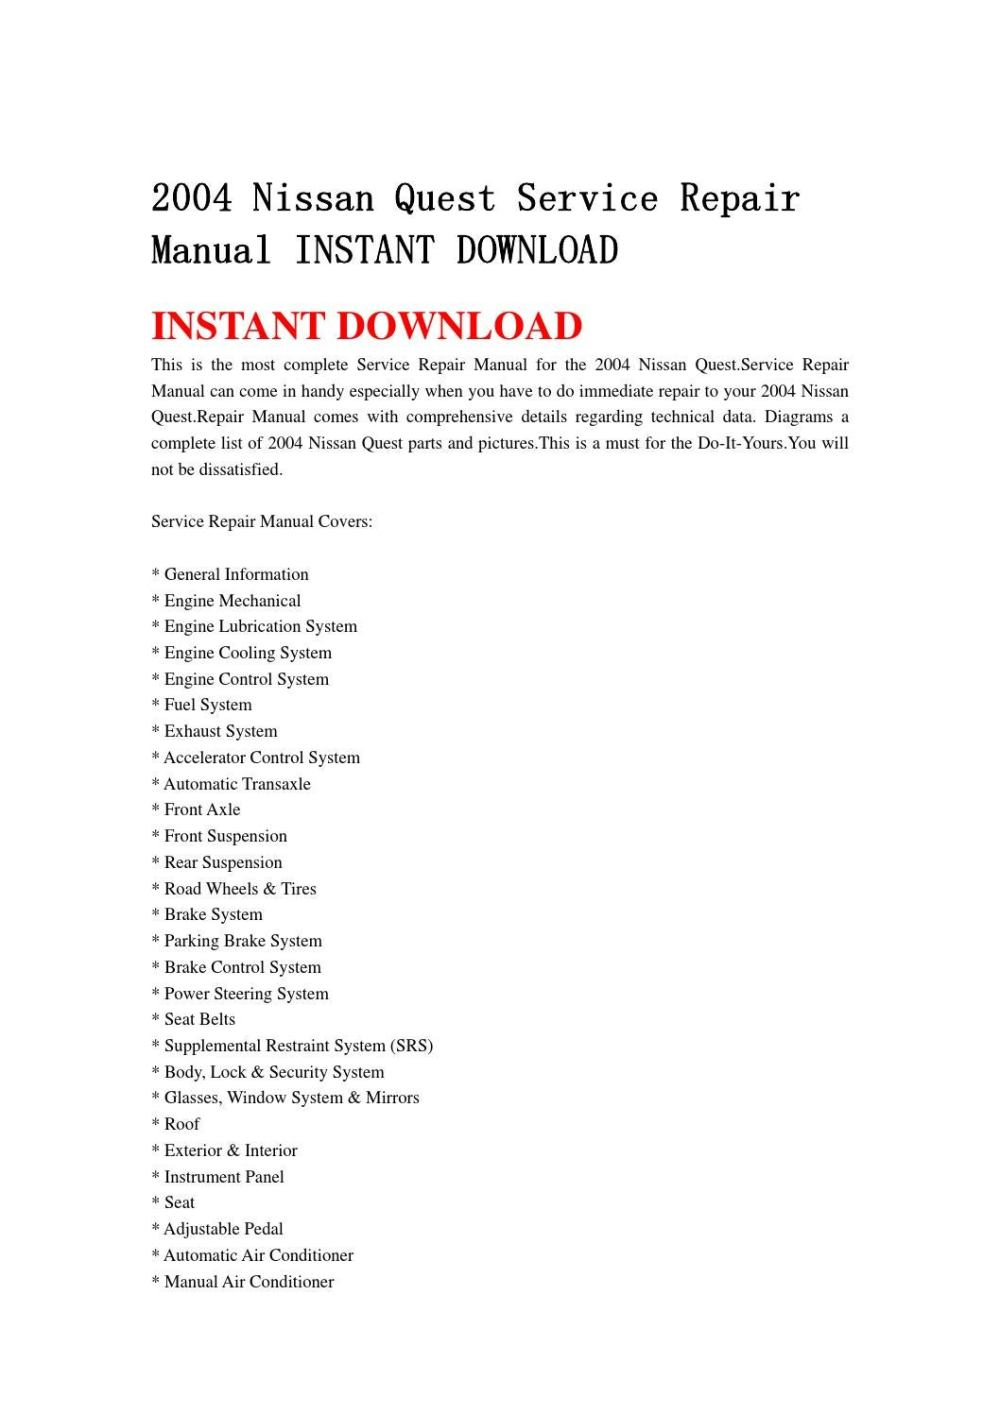 medium resolution of 2004 nissan quest service repair manual instant download by jdfhnsenn issuu